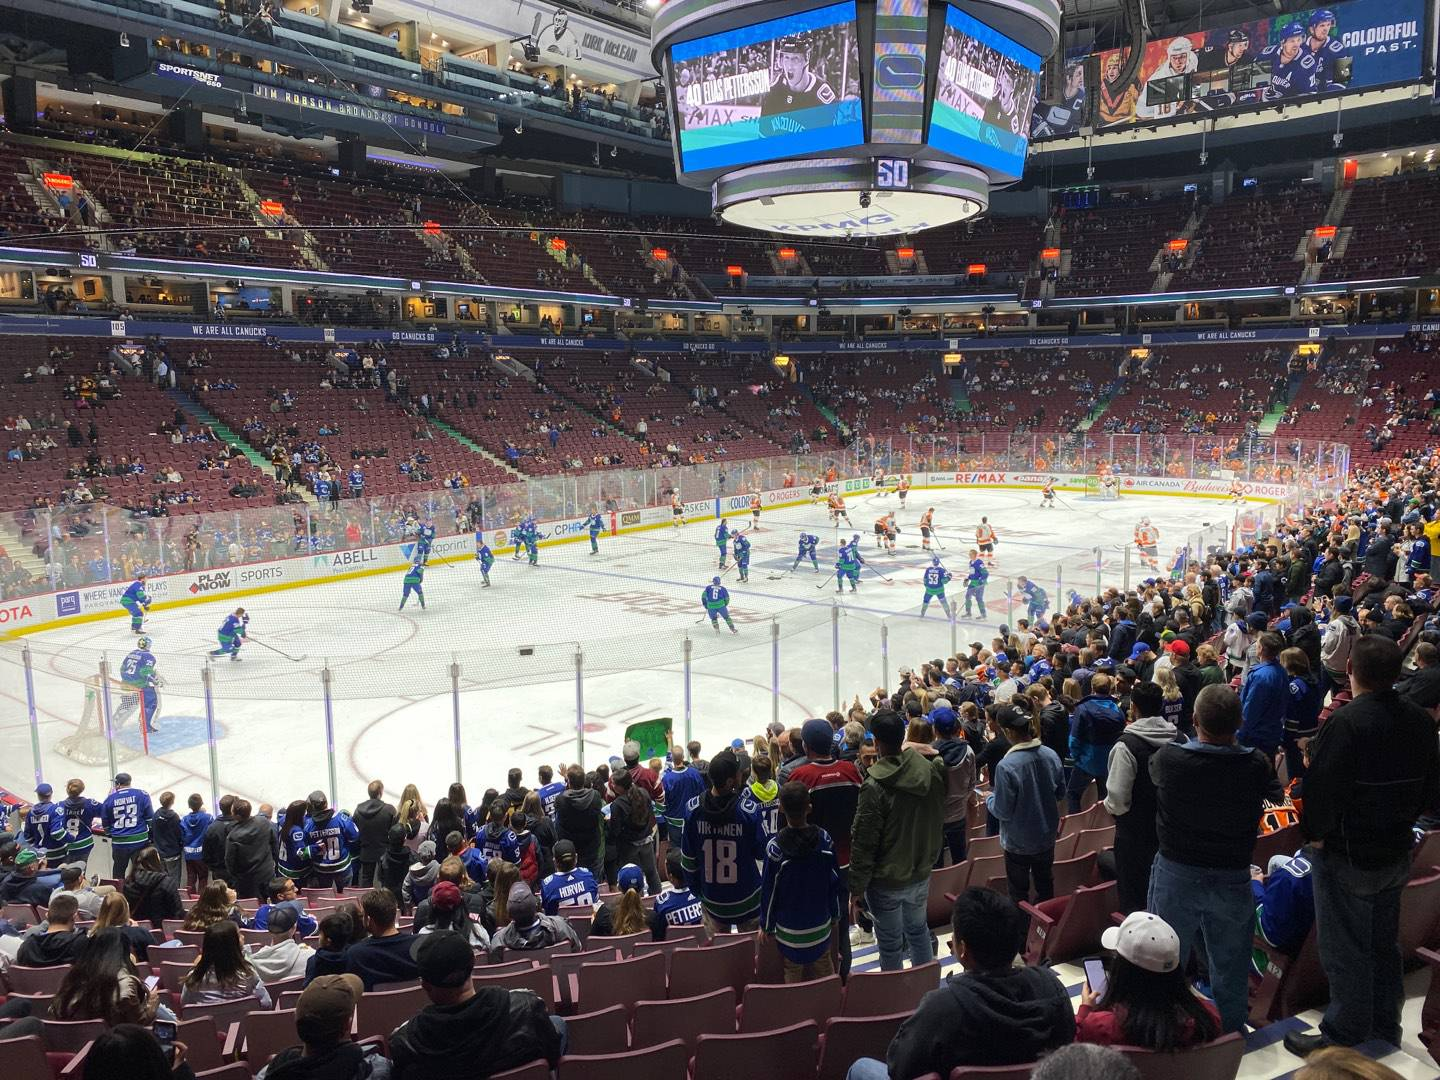 Rogers Arena Section 120 Row 17 Seat 6